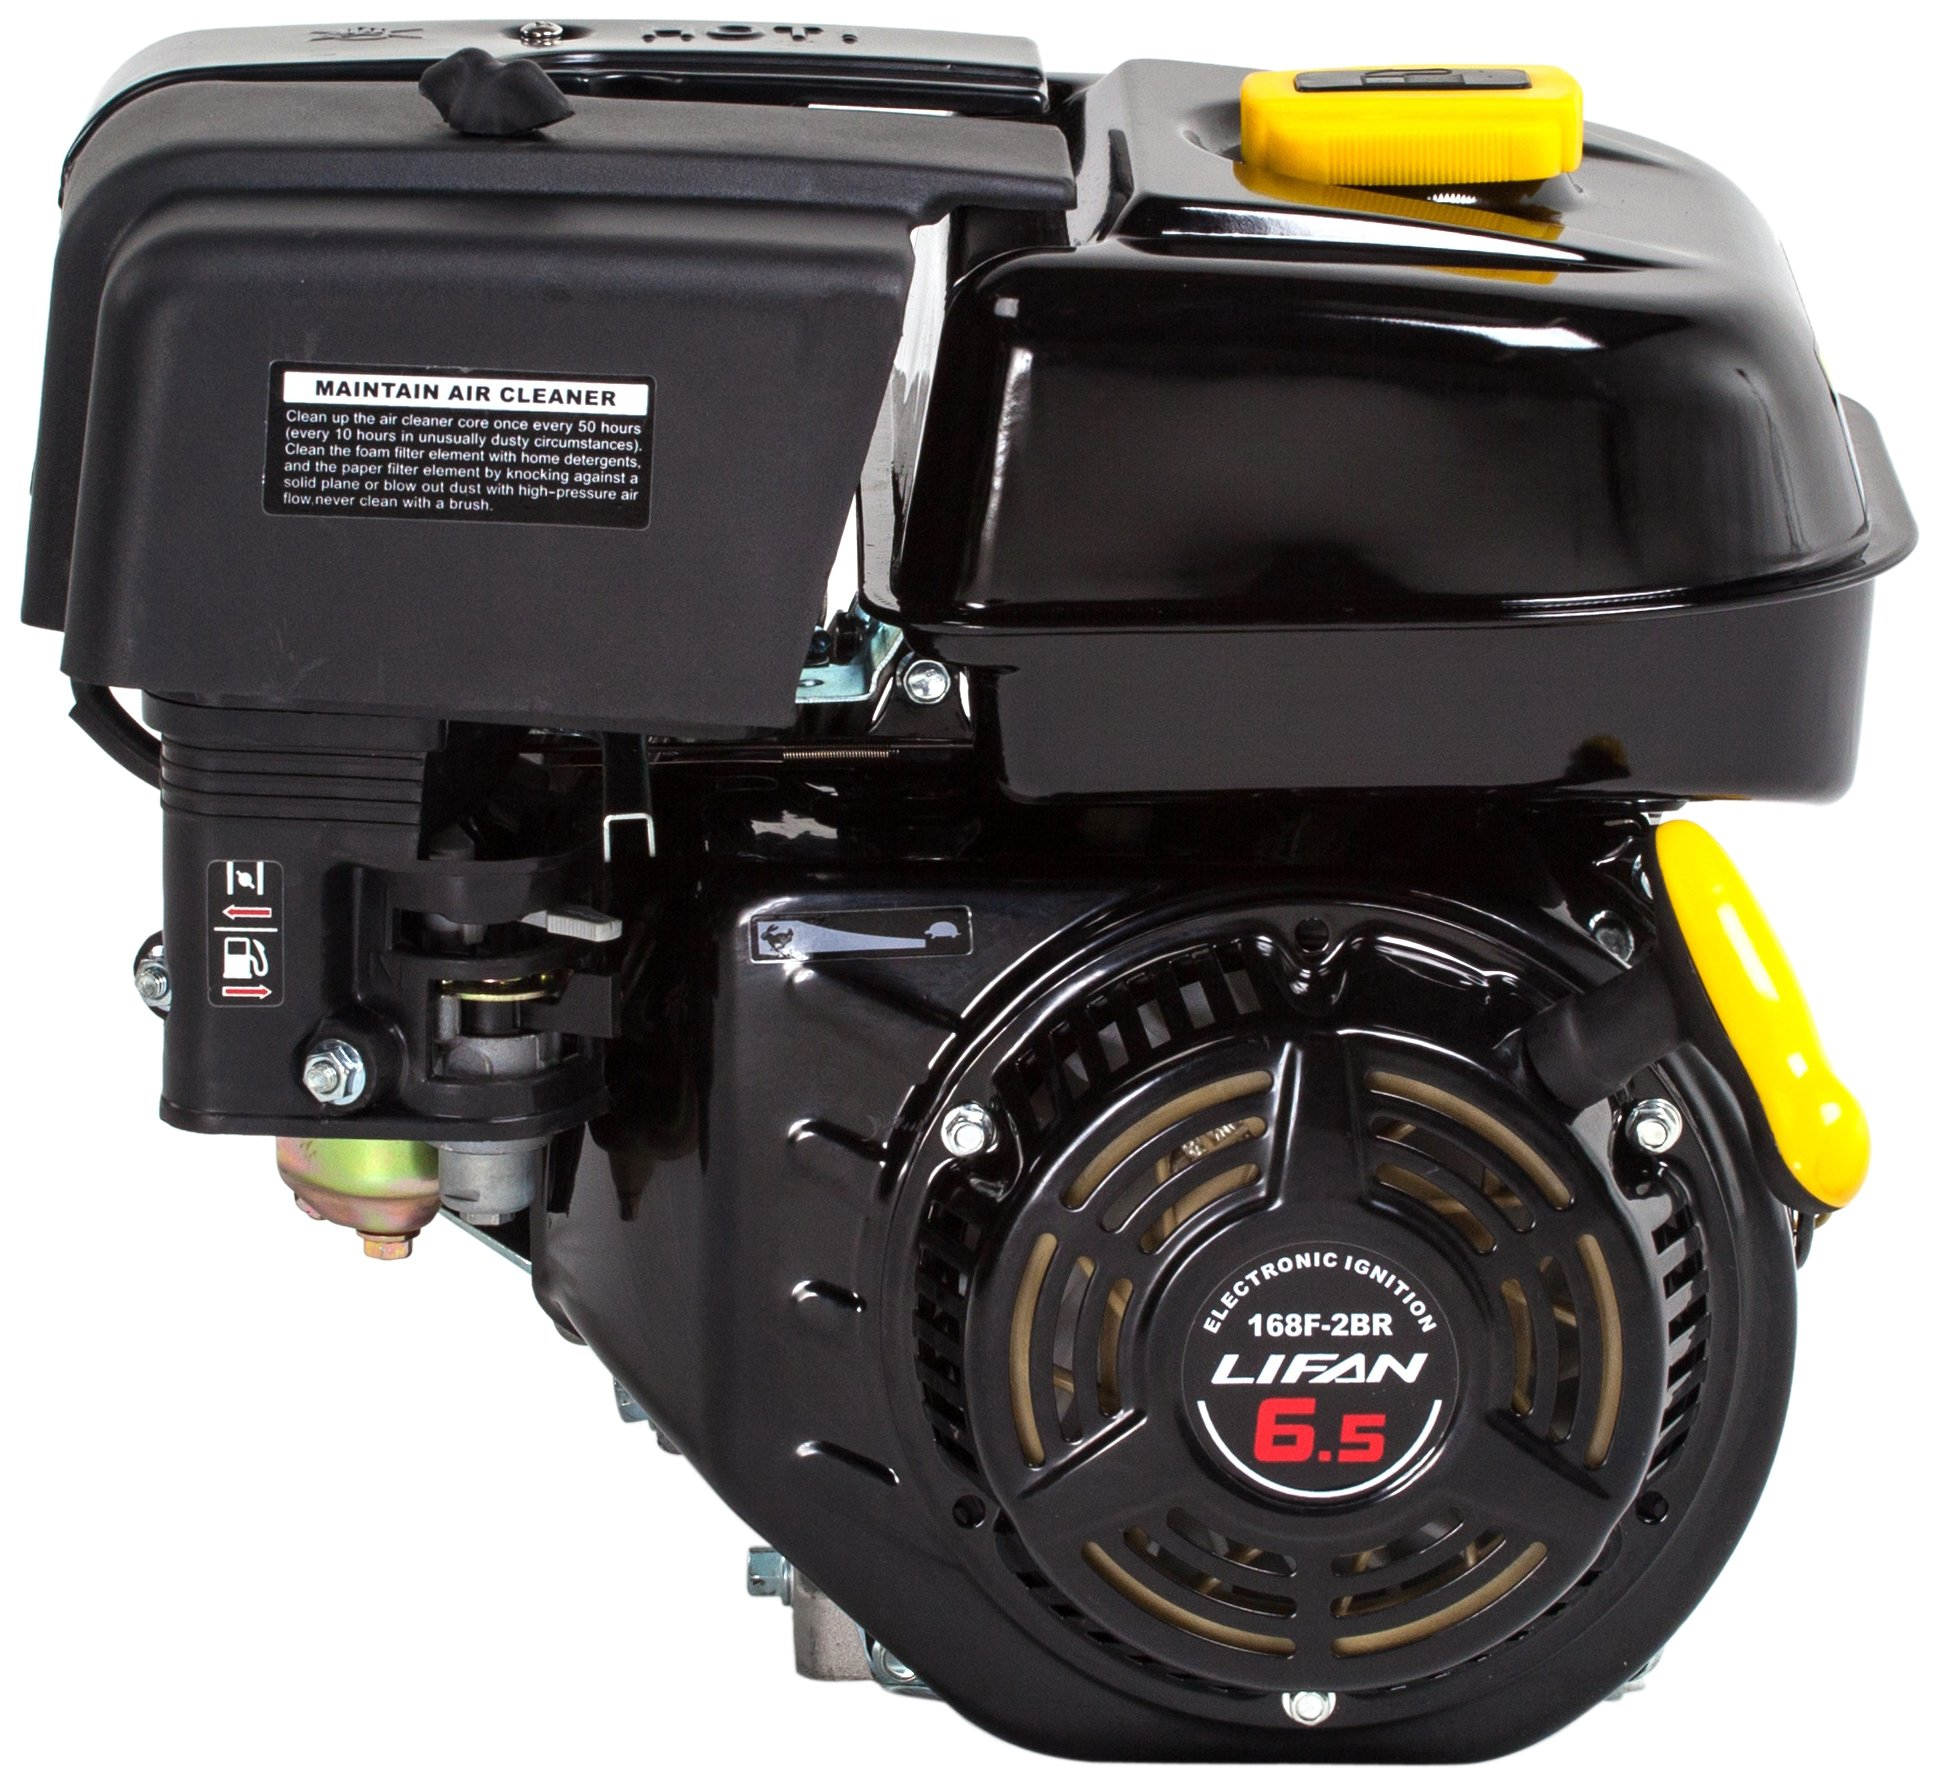 Lifan LF168F-2BRQ 6.5 HP 196cc 4-Stroke OHV Industrial Grade Gas Engine with 2:1 Centrifugal Wet Clutch Reduction, Recoil Start, and Universal Mounting Pattern